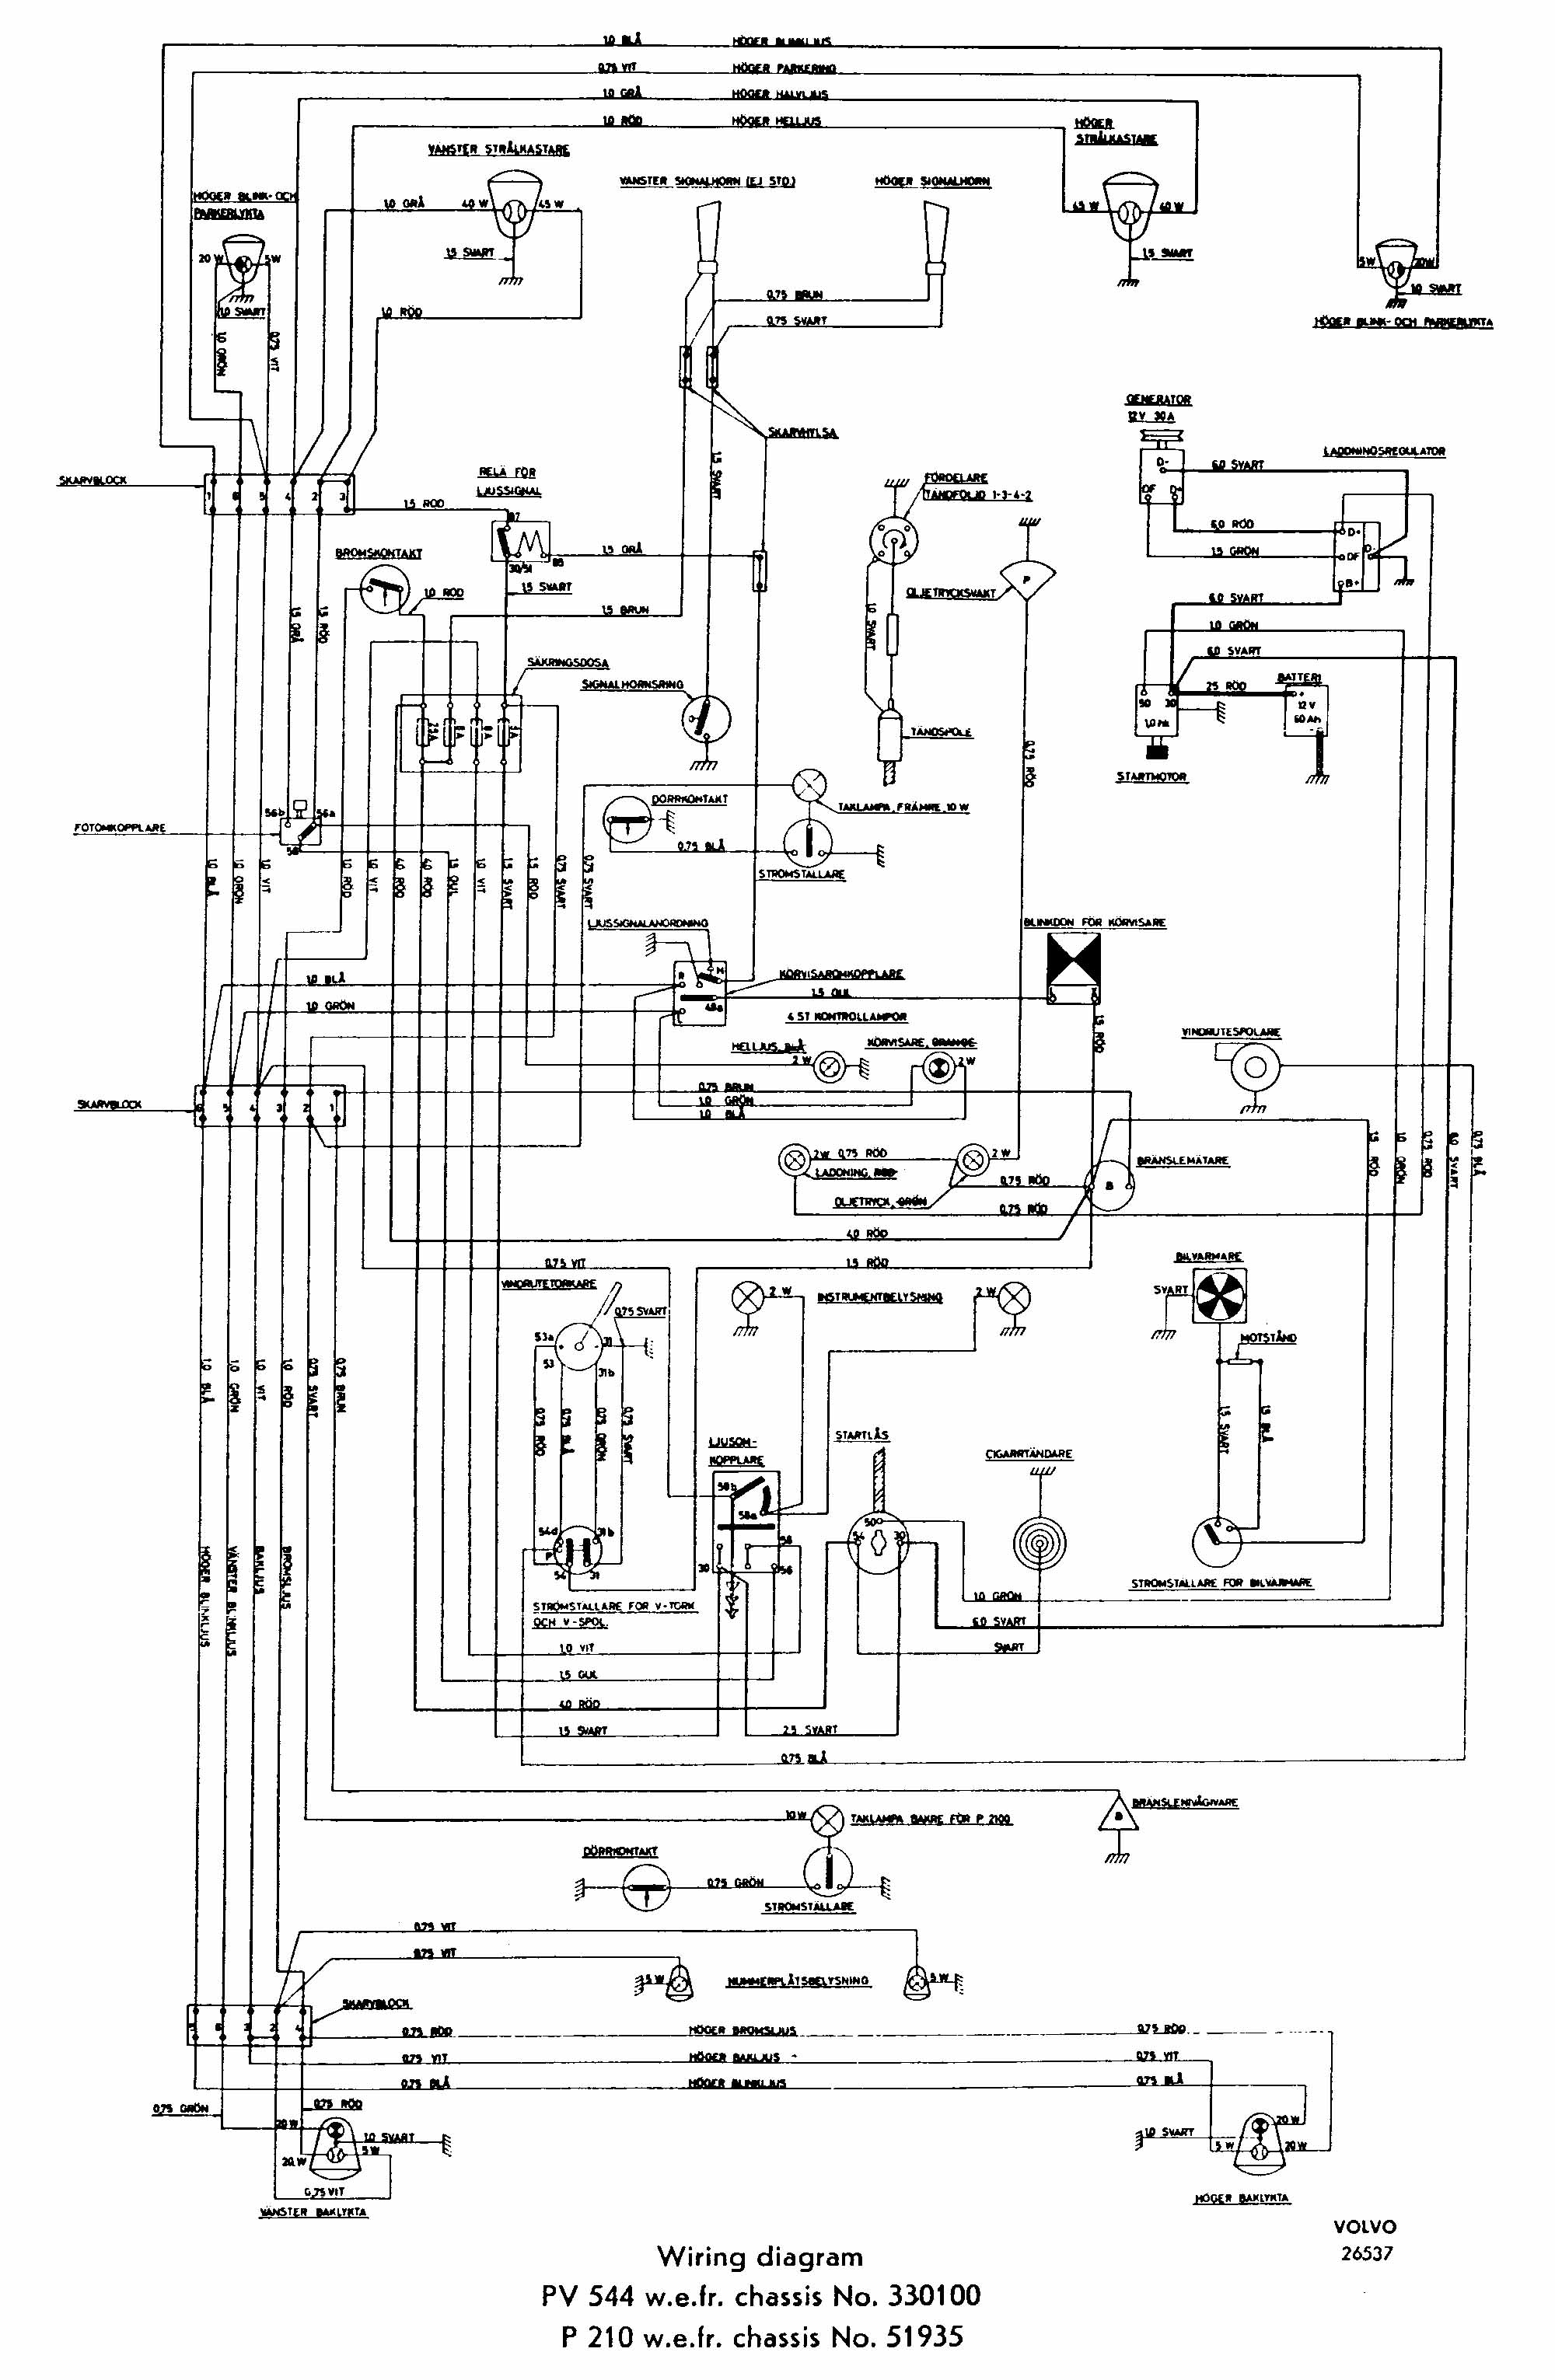 Omega Wiring Diagrams Automotive Source Viking Train Horn Diagram Schematics Fuse Box 1964 Ford Falcon Braking System